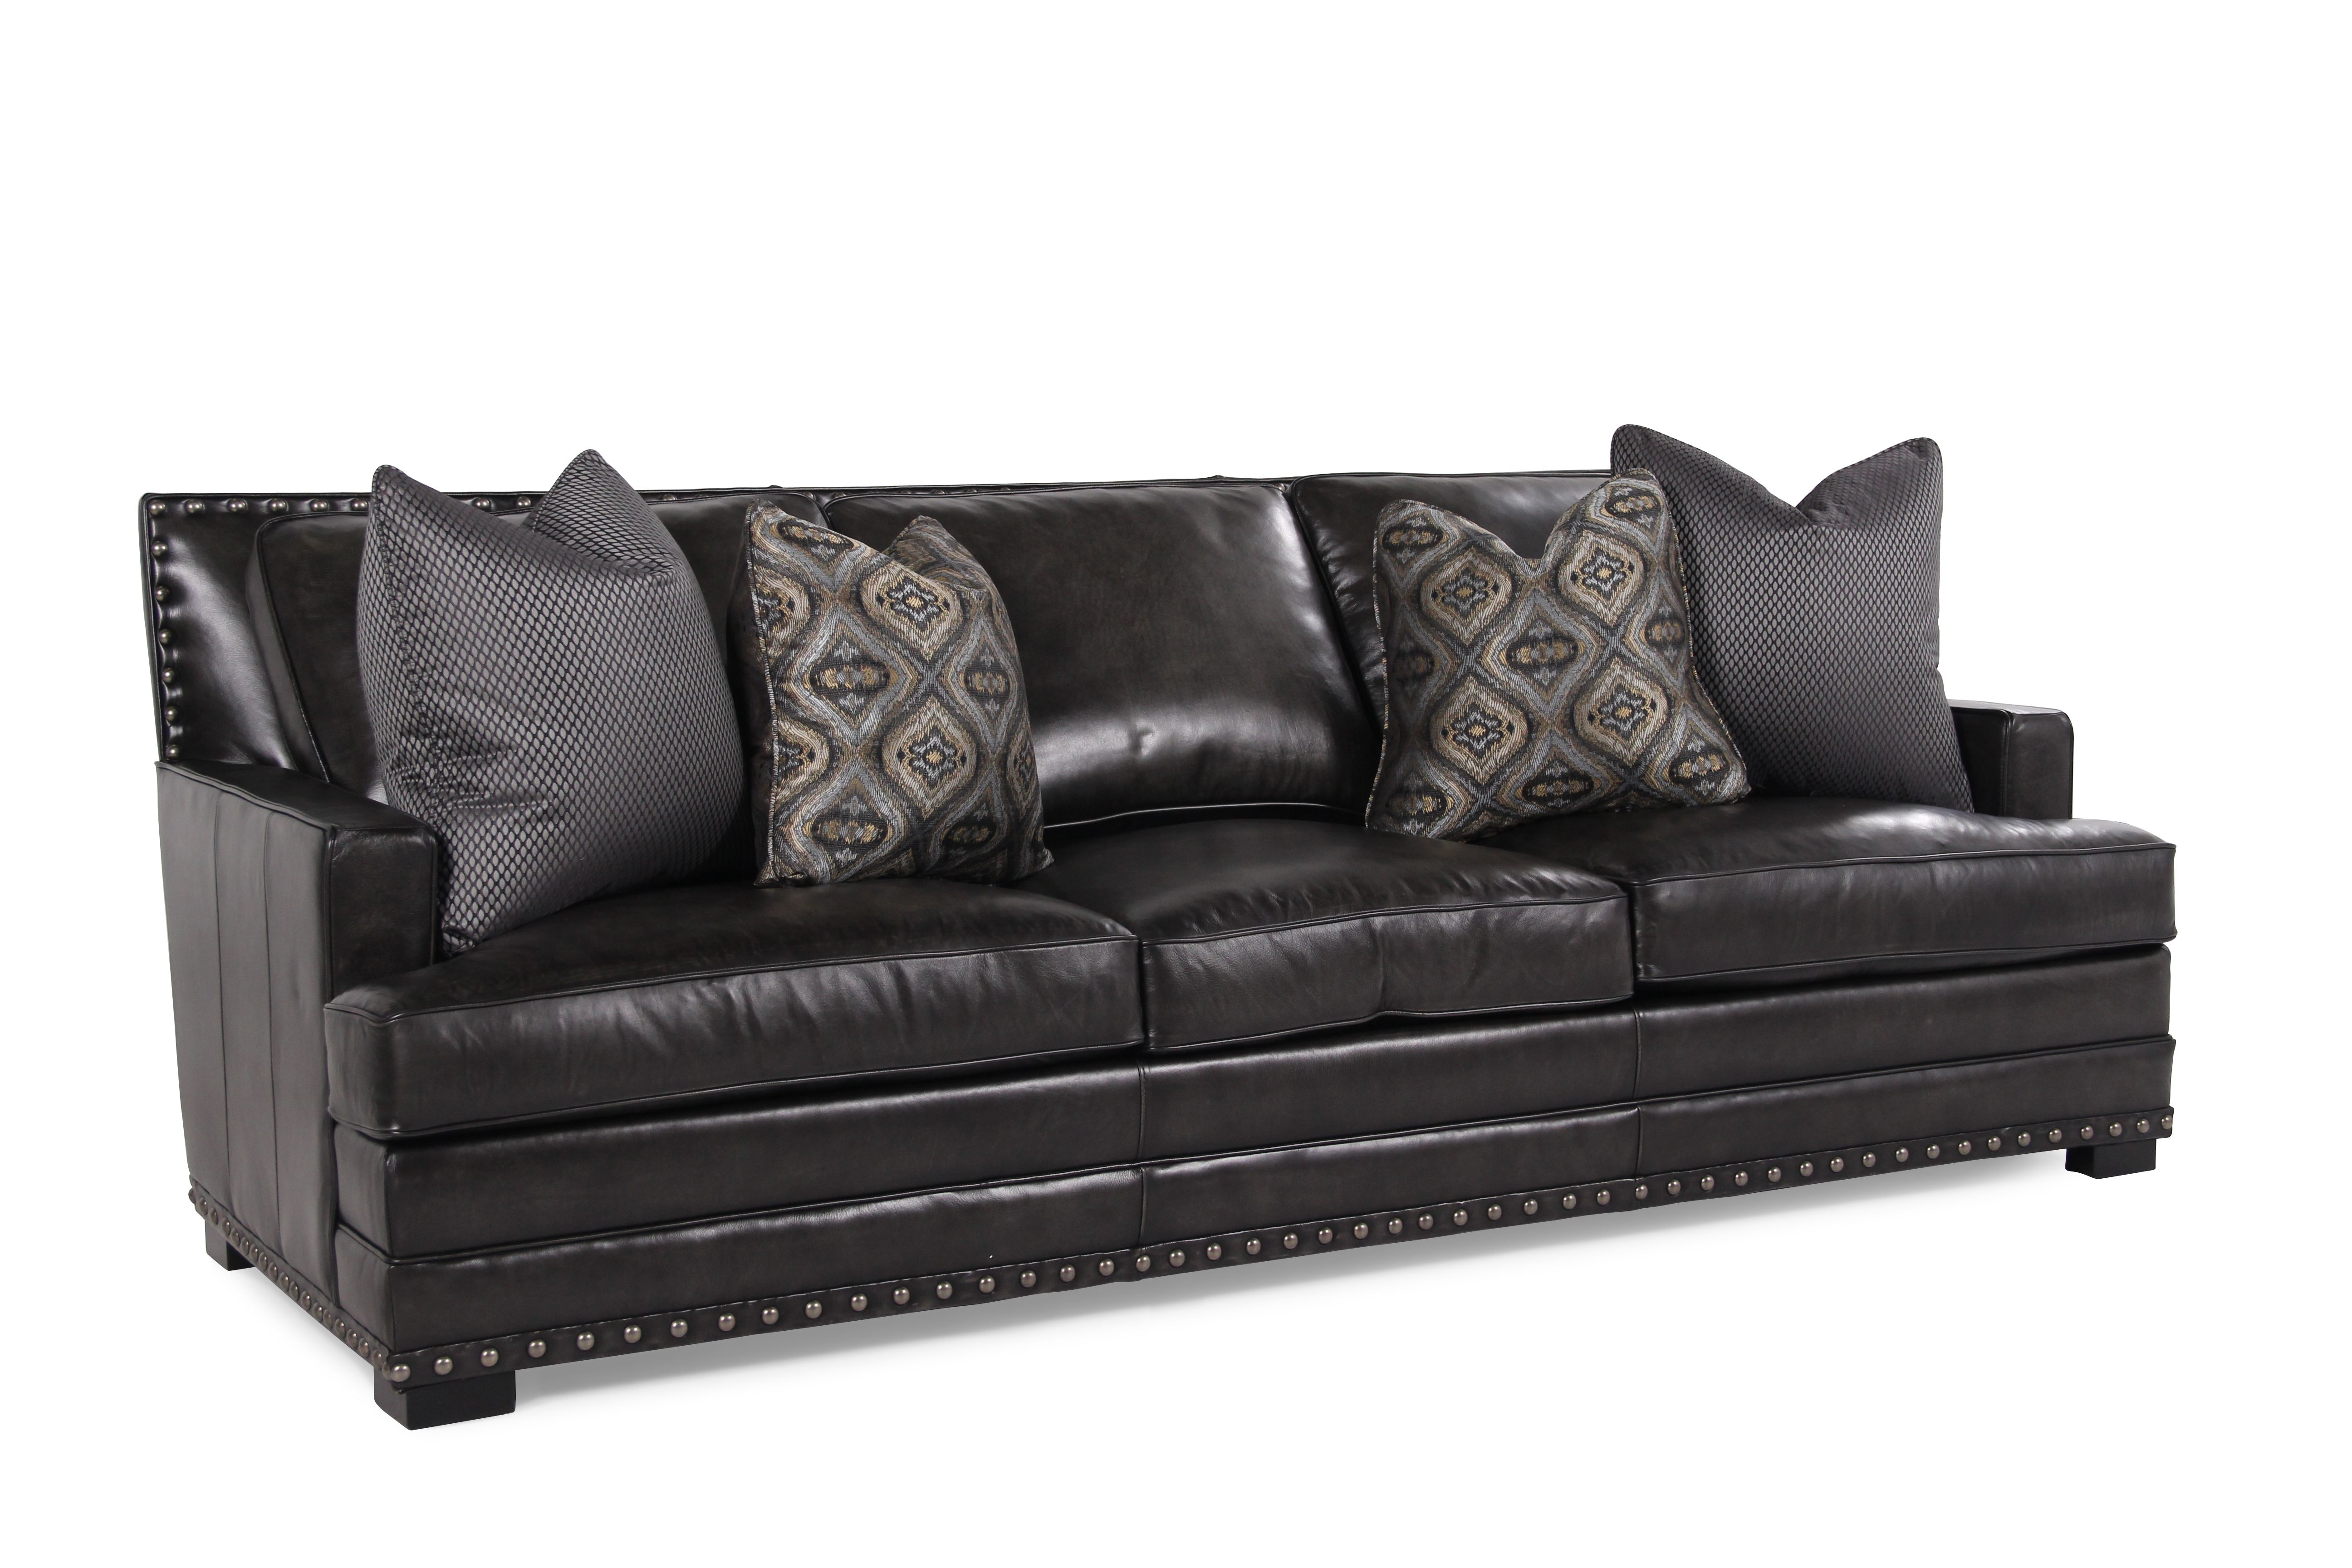 Awe Inspiring Bernhardt Cantor Graphite Leather Sofa Mathis Brothers Download Free Architecture Designs Sospemadebymaigaardcom